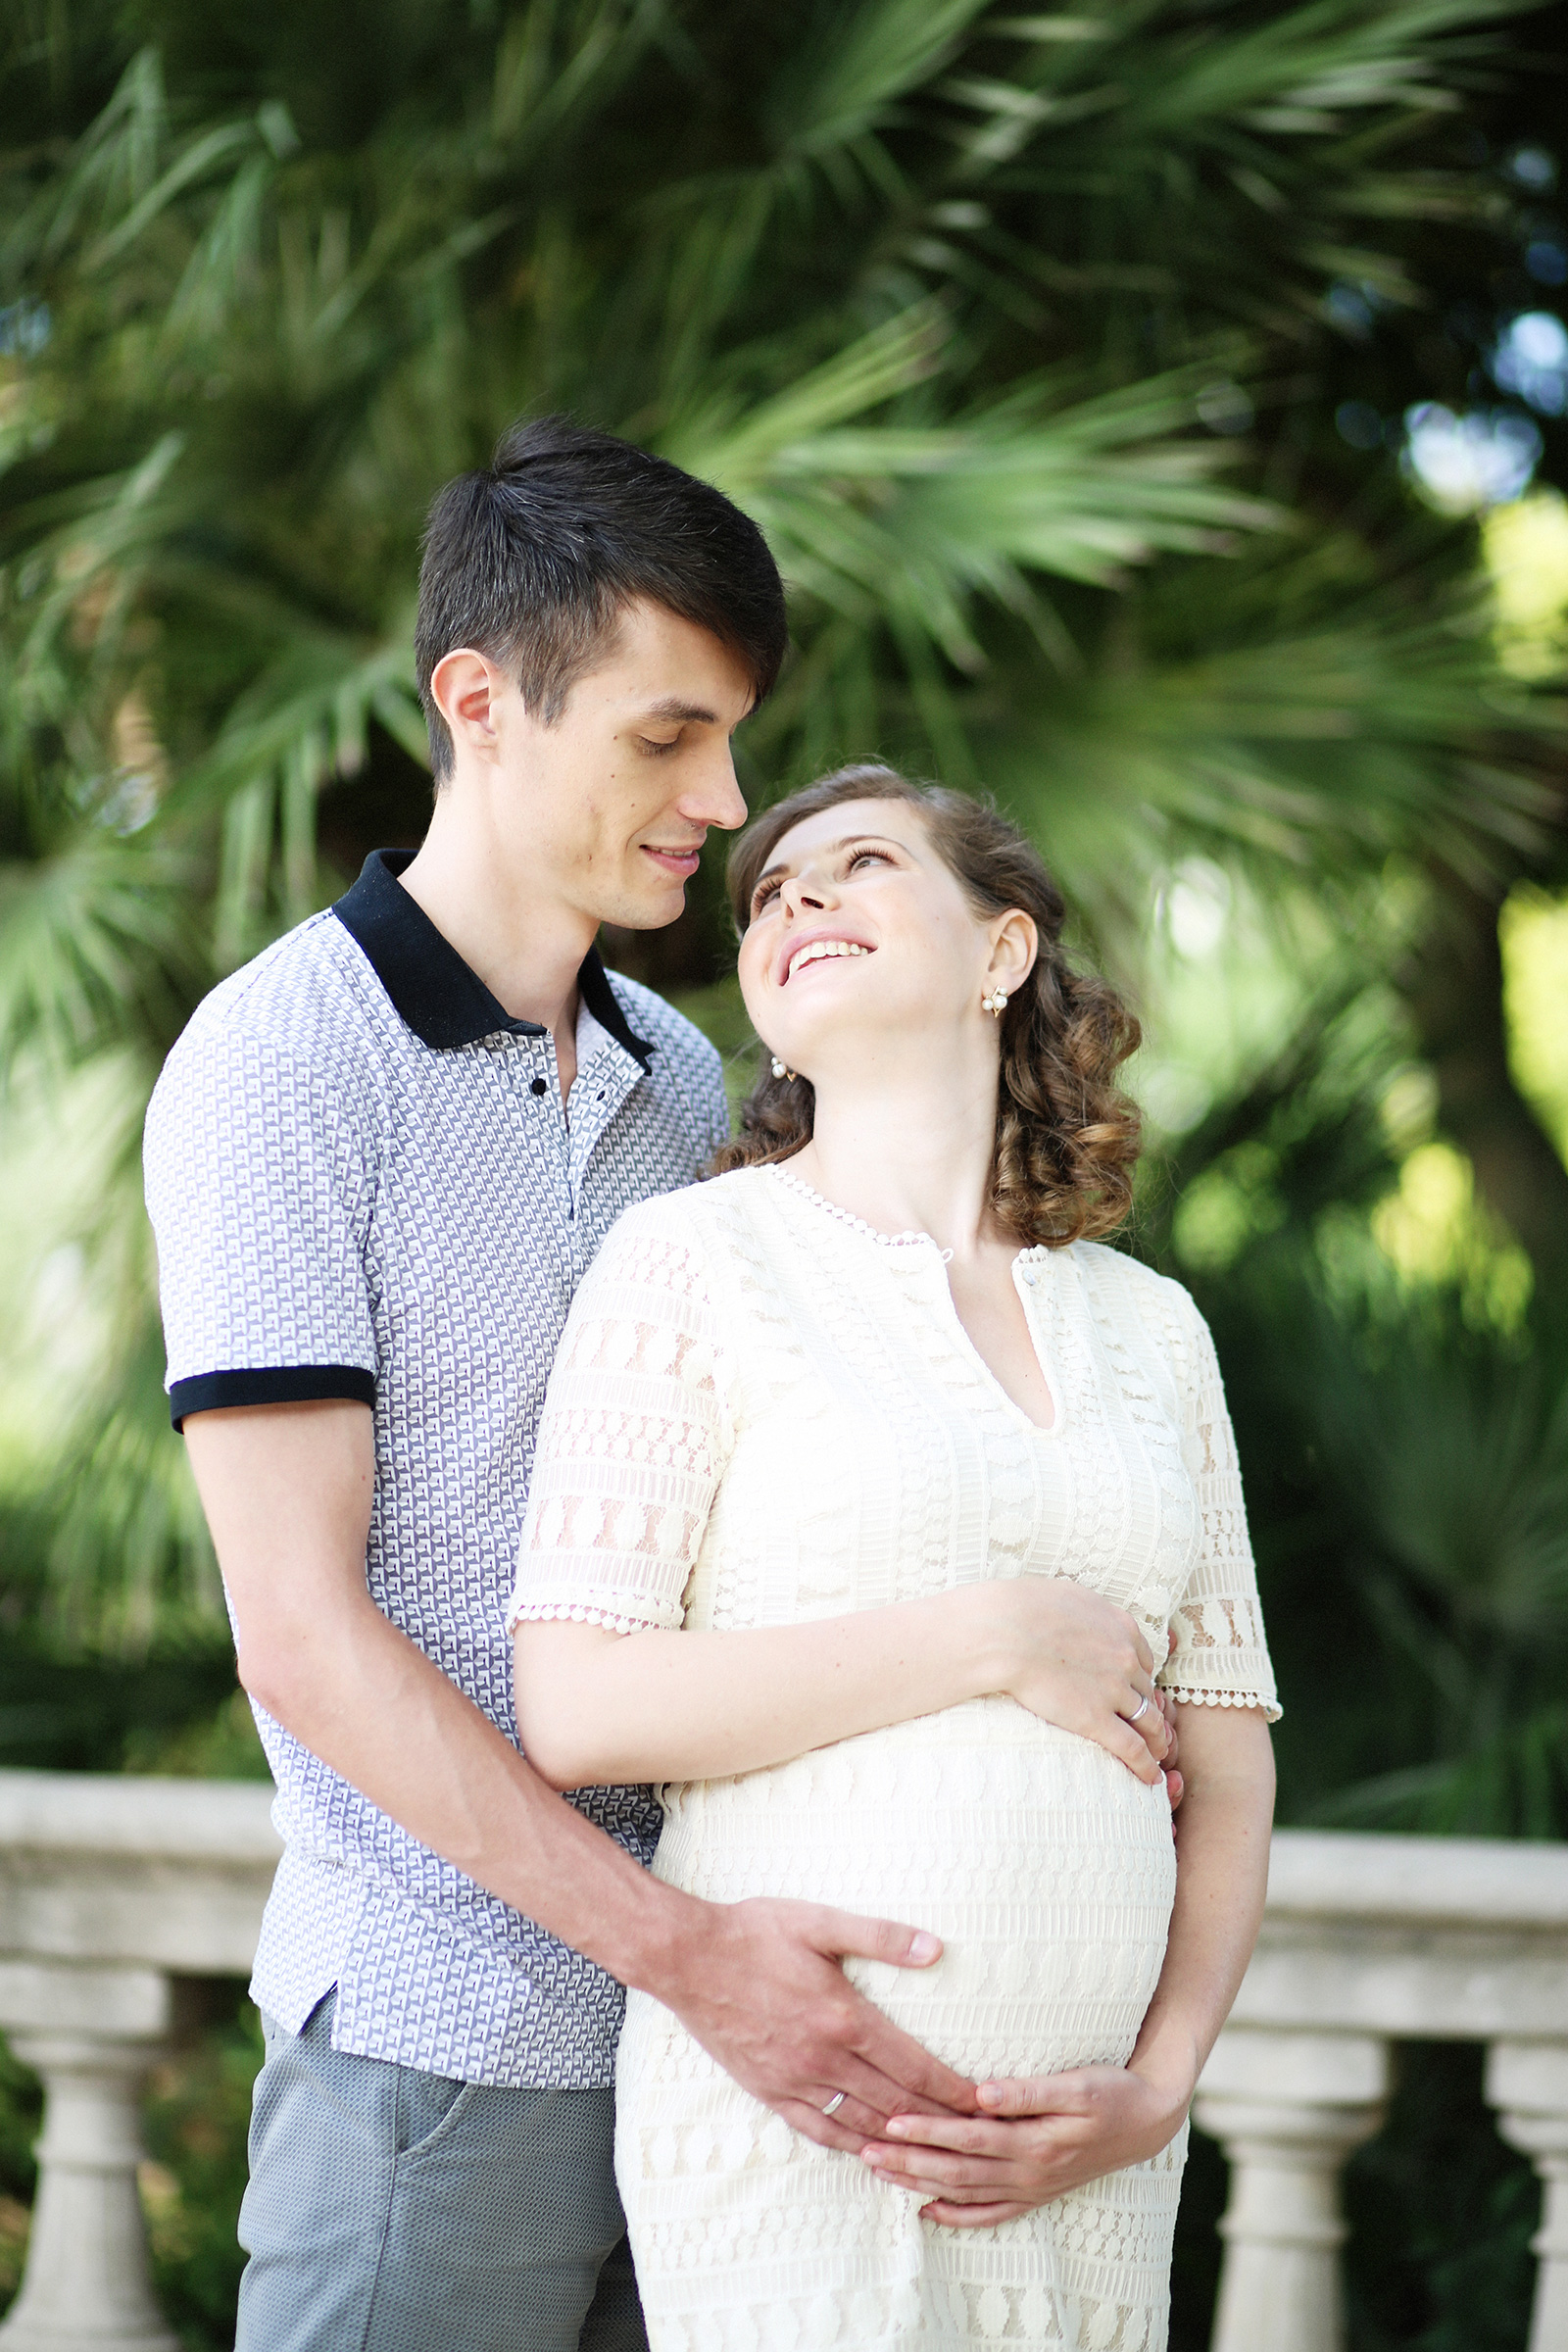 Maternity photo shoot Barcelona Parc de la Ciutadela